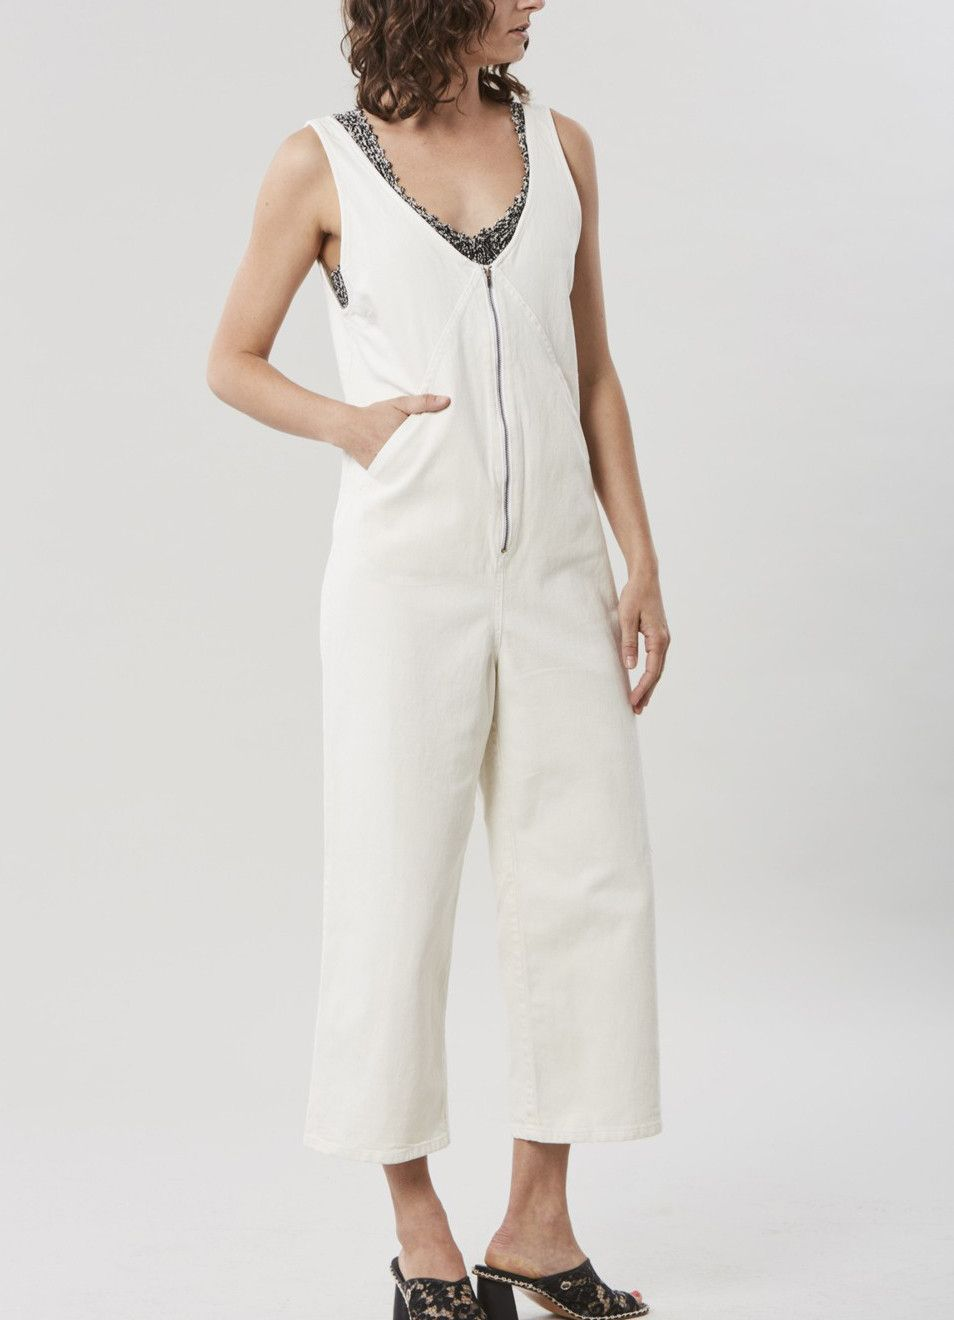 9f6580aaa49a Sleeveless jumpsuit in our Dirty White denim with deep v-neck. Exposed  front zip closure and slit pockets at the hip. Wide